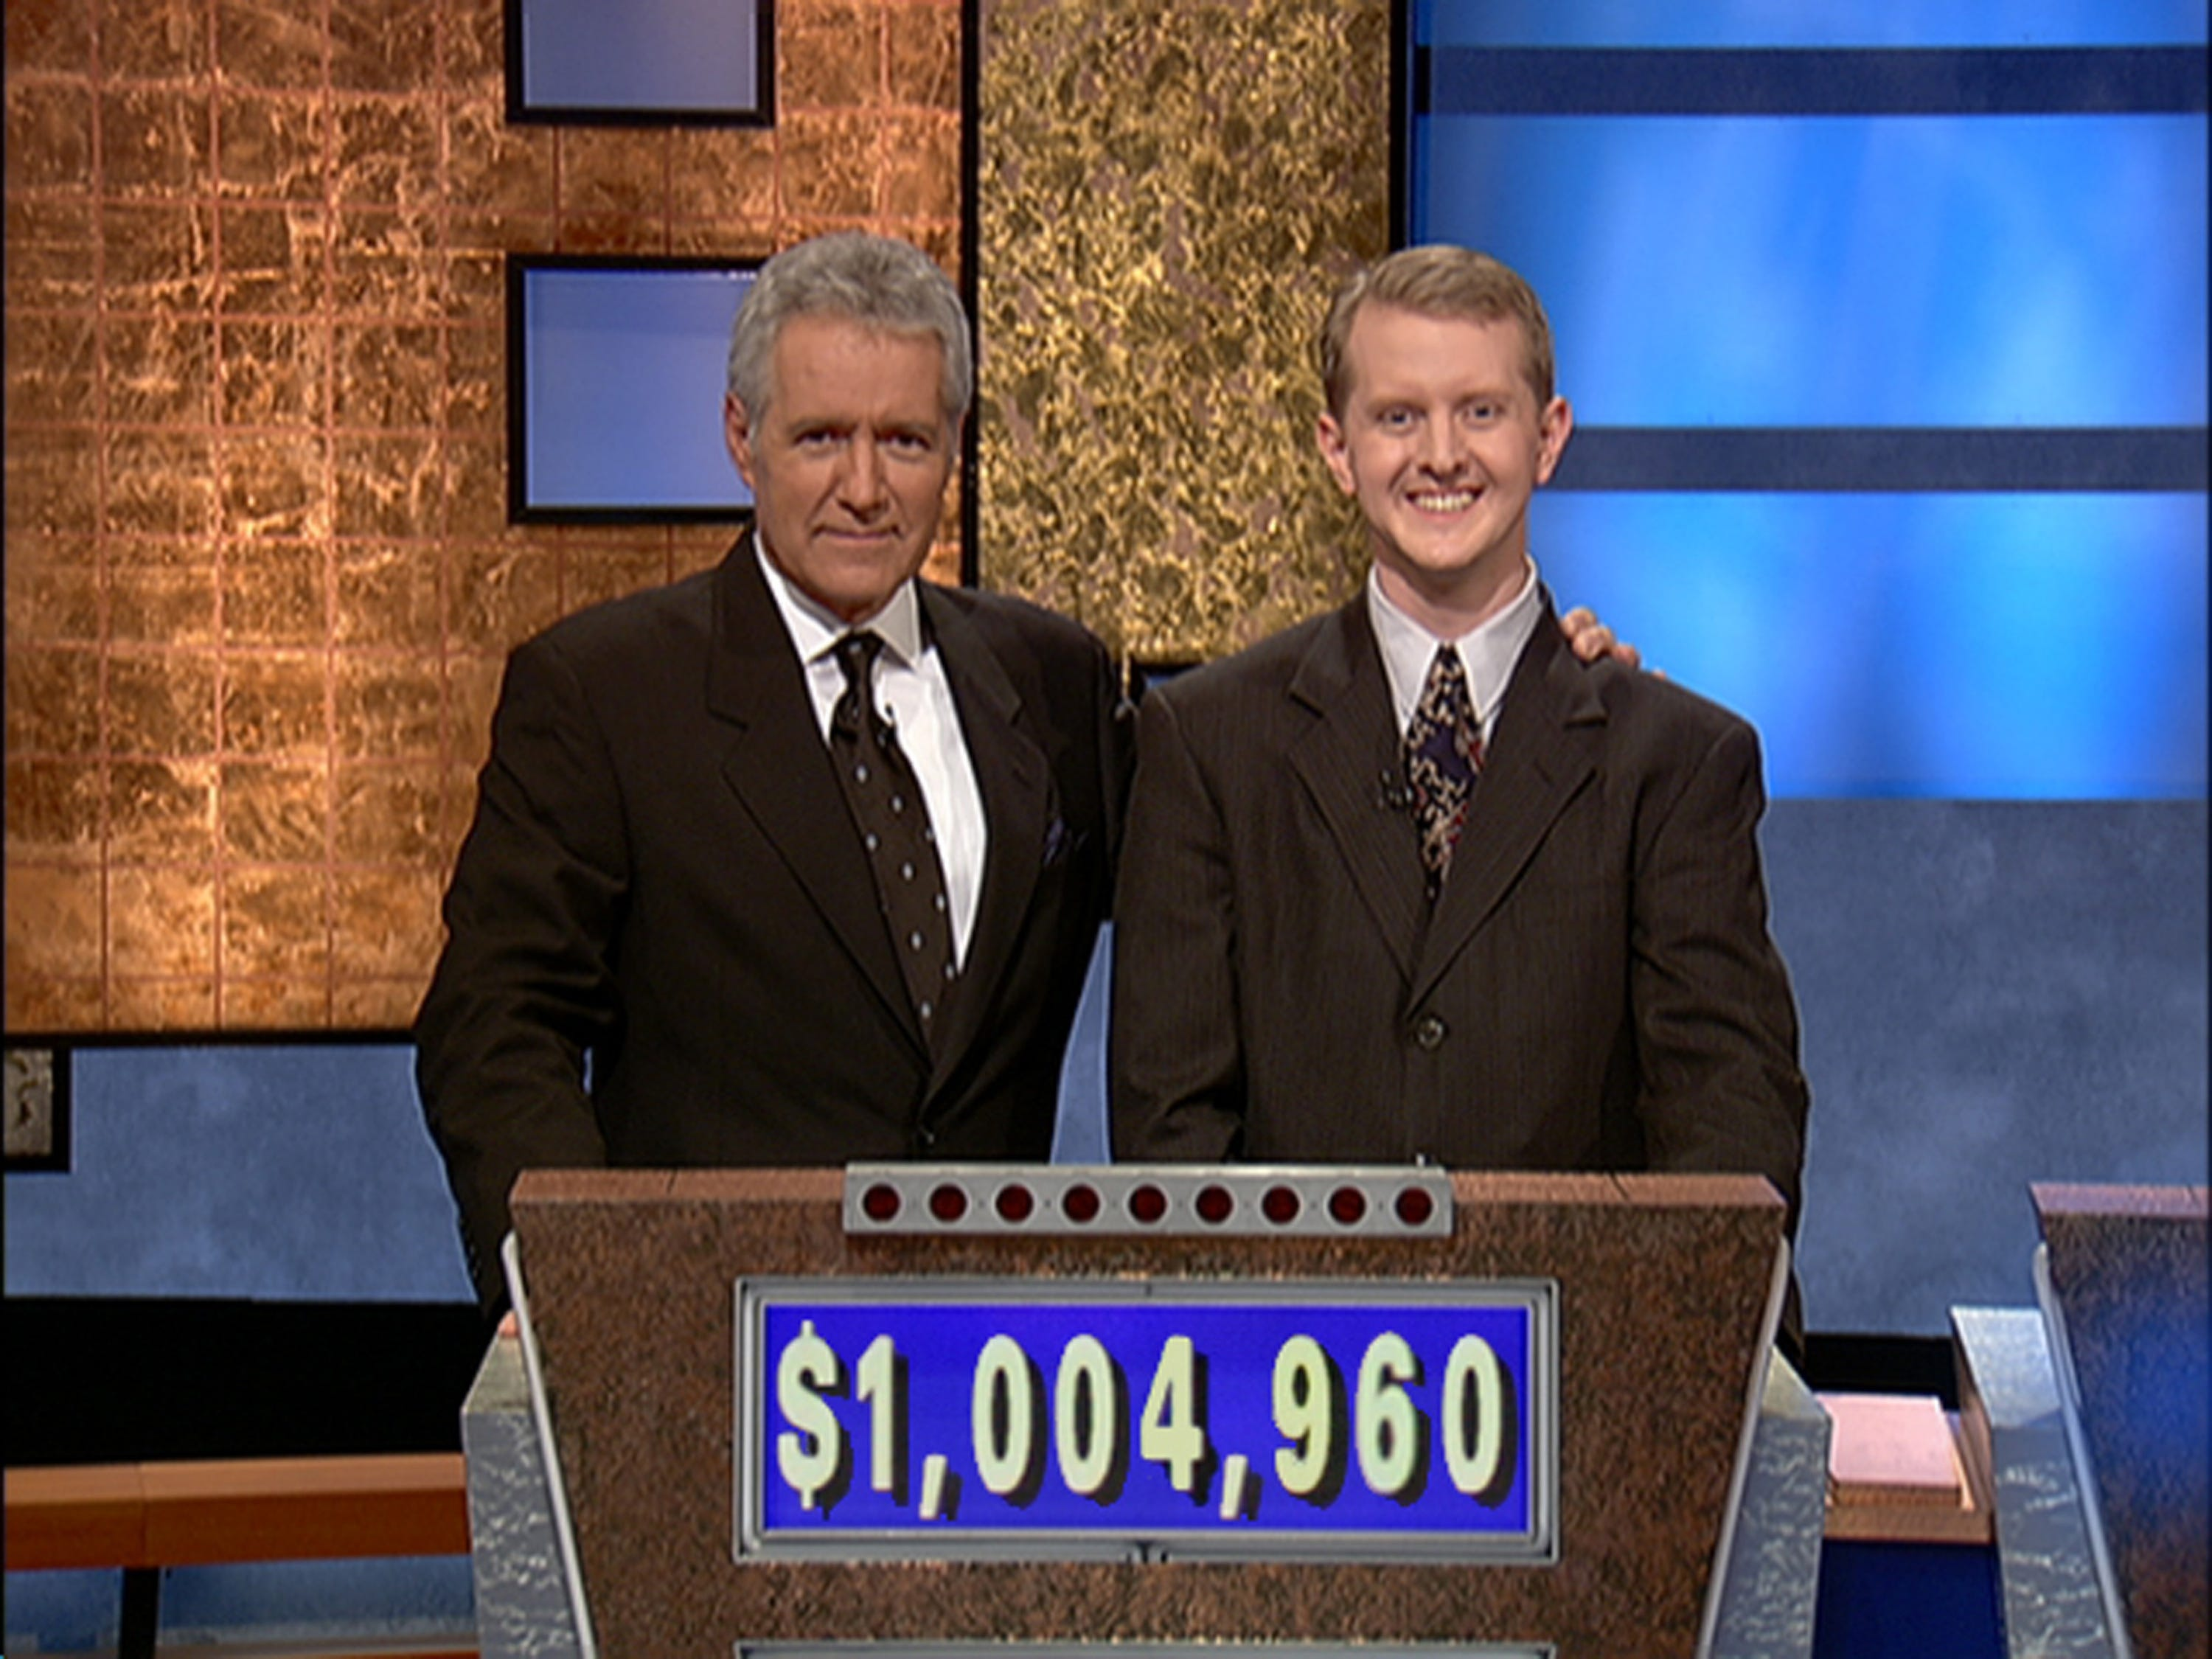 Jeopardy host Alex Trebek poses contestant Ken Jennings after his earnings from his record breaking streak on the gameshow surpassed 1 million dollars July 14, 2004 in Culver City, Calif.